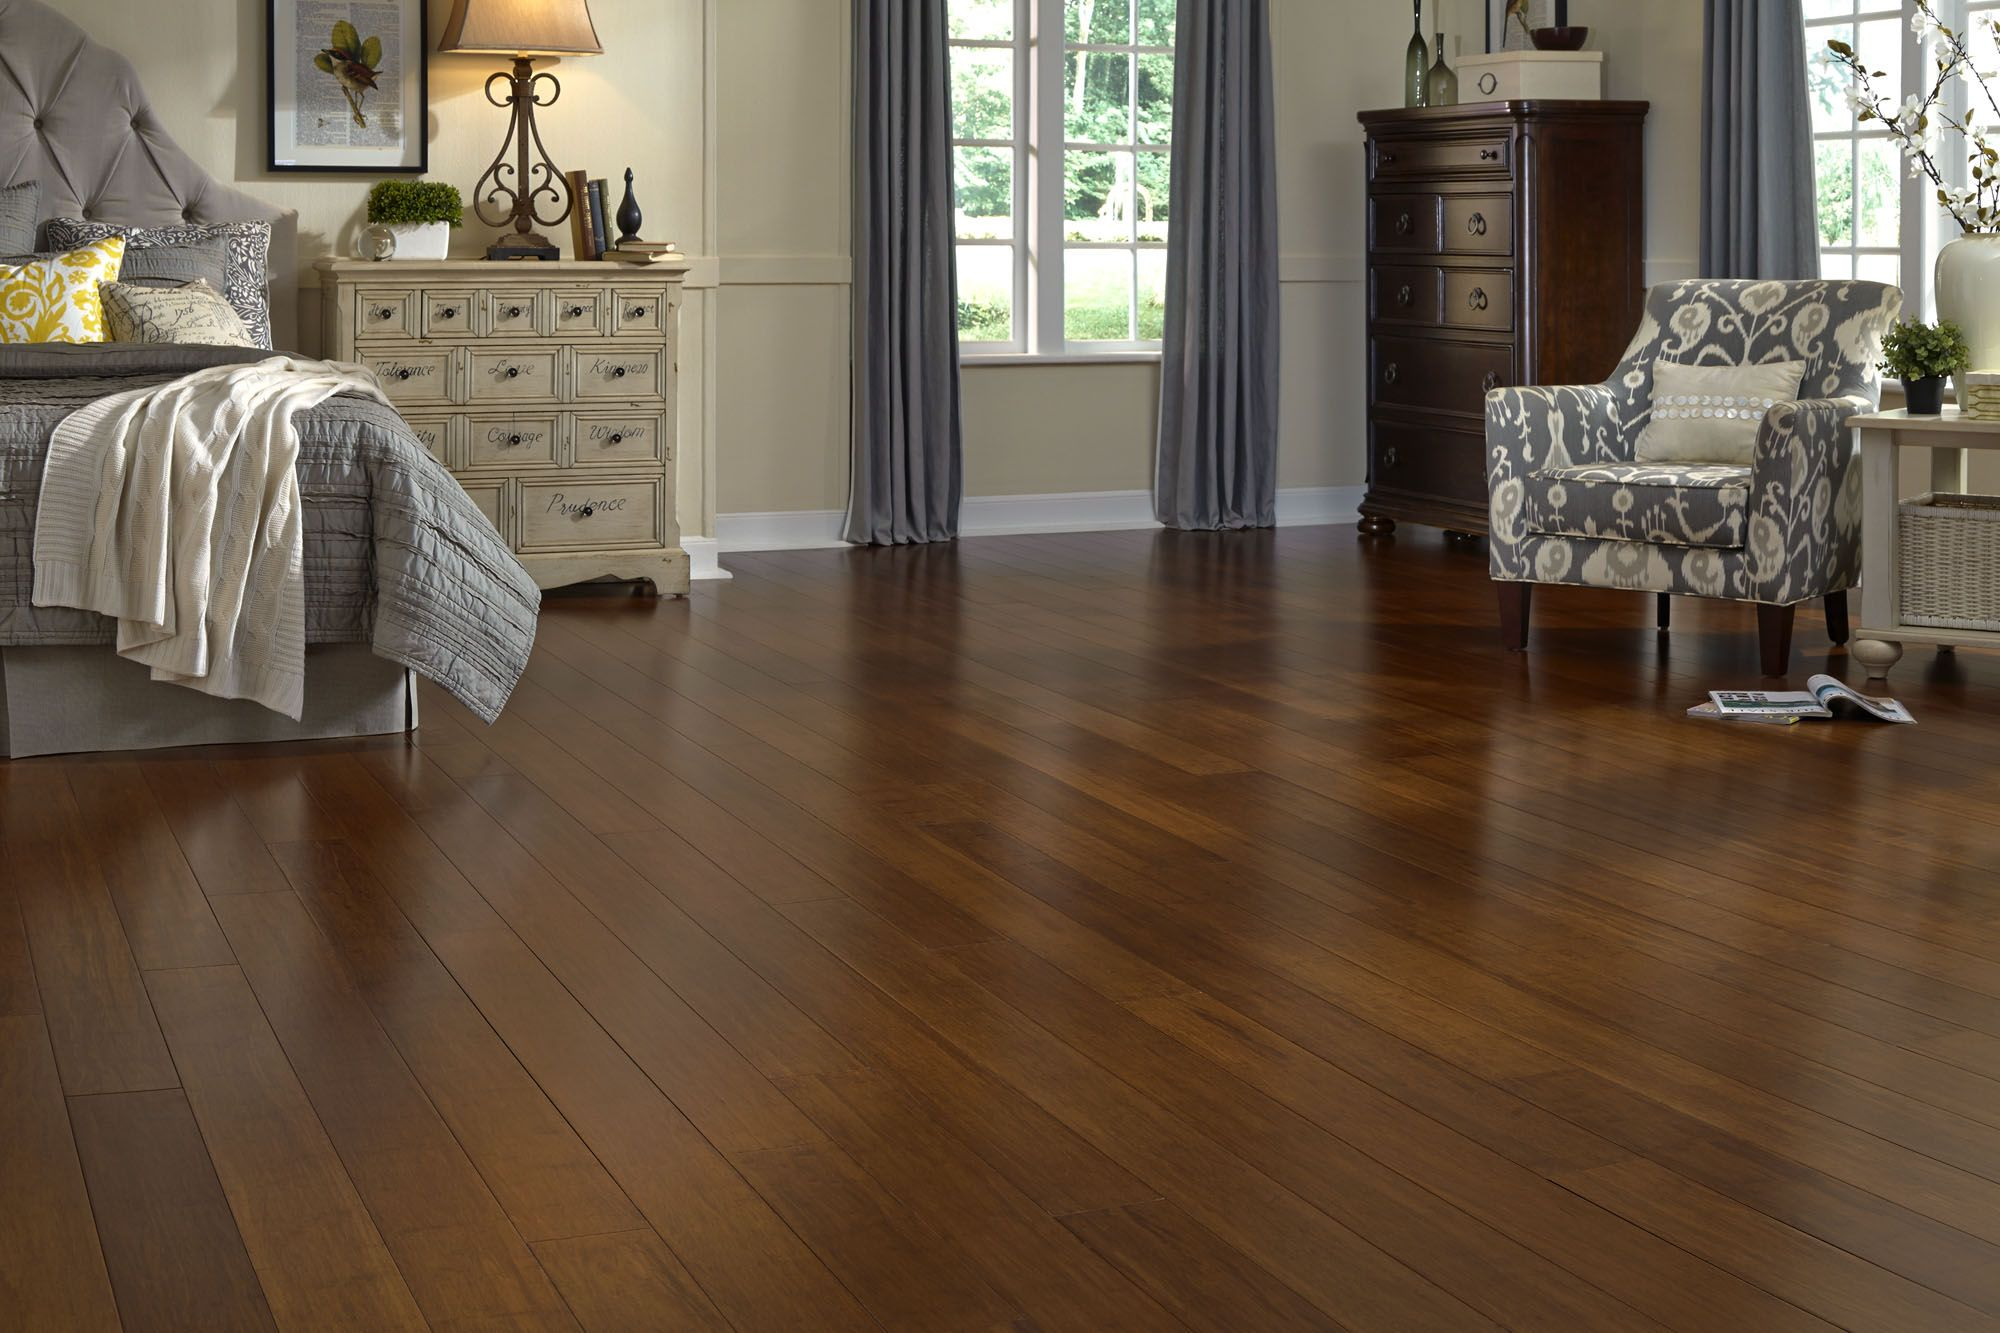 English toffee strand by morning star bamboo floors bamboo in